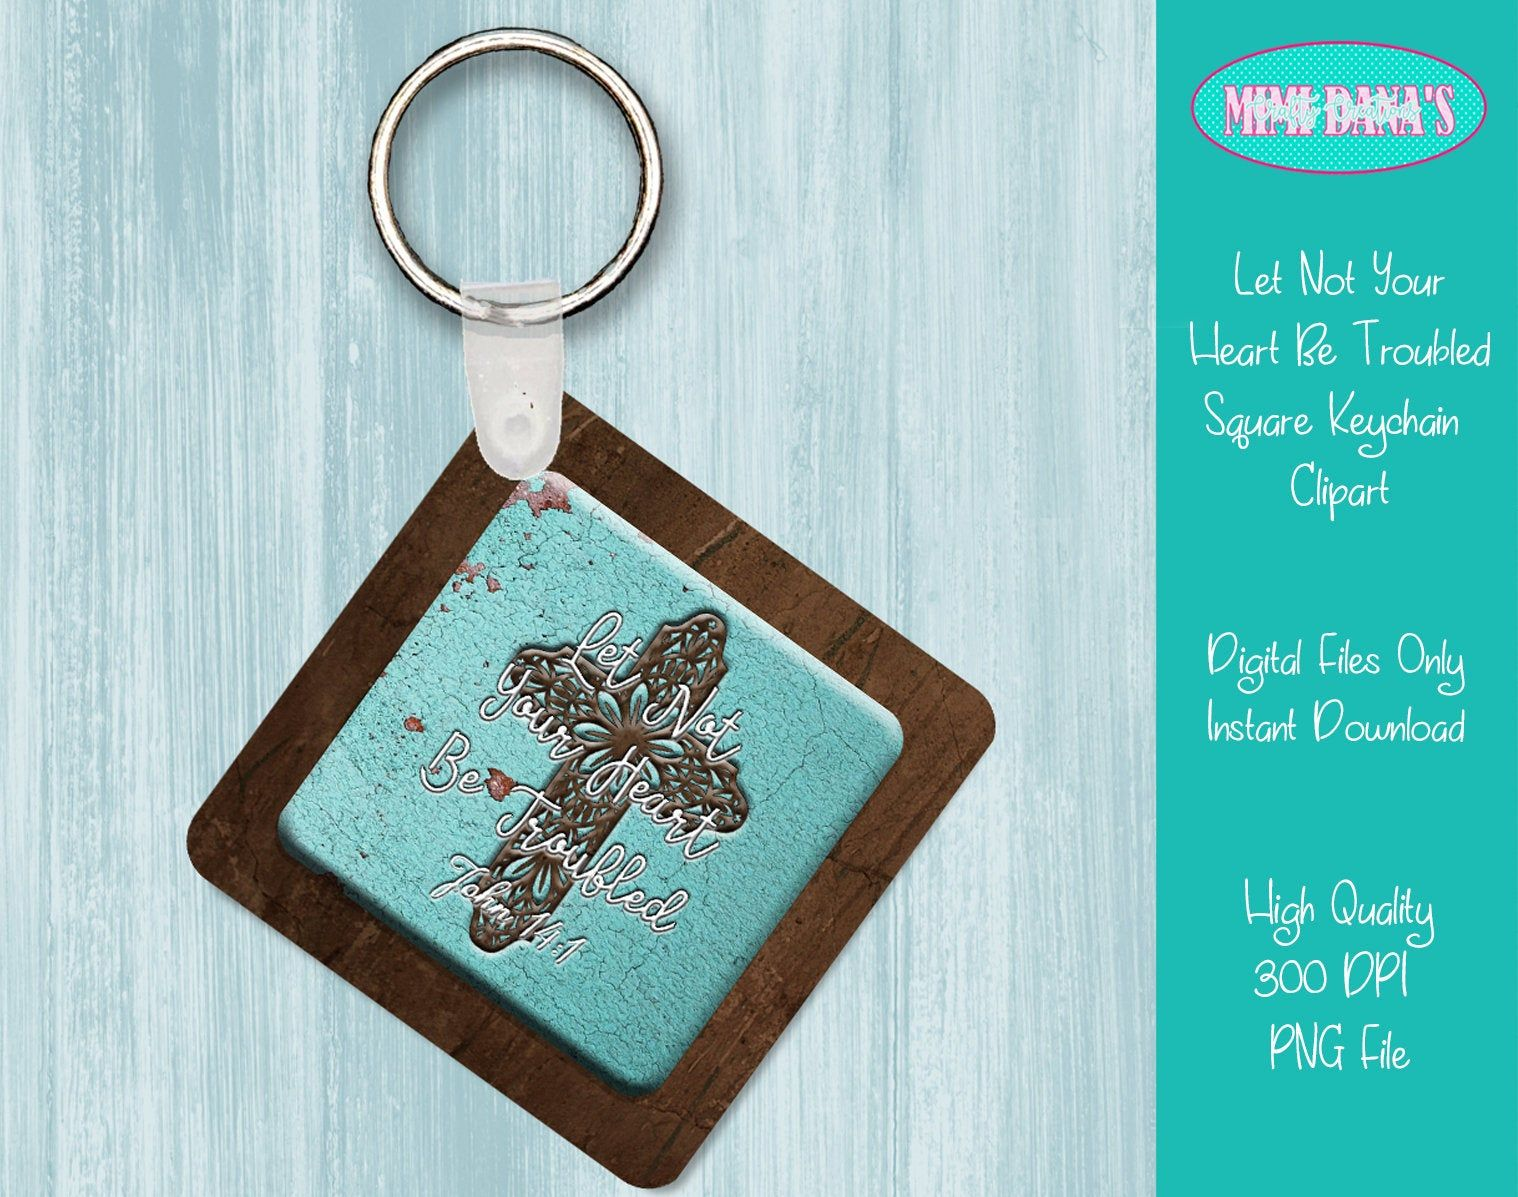 Let Not Your Heart Be Troubled Square Keychain Clipart Etsy Clip Art Pretty Wall Art Keychain